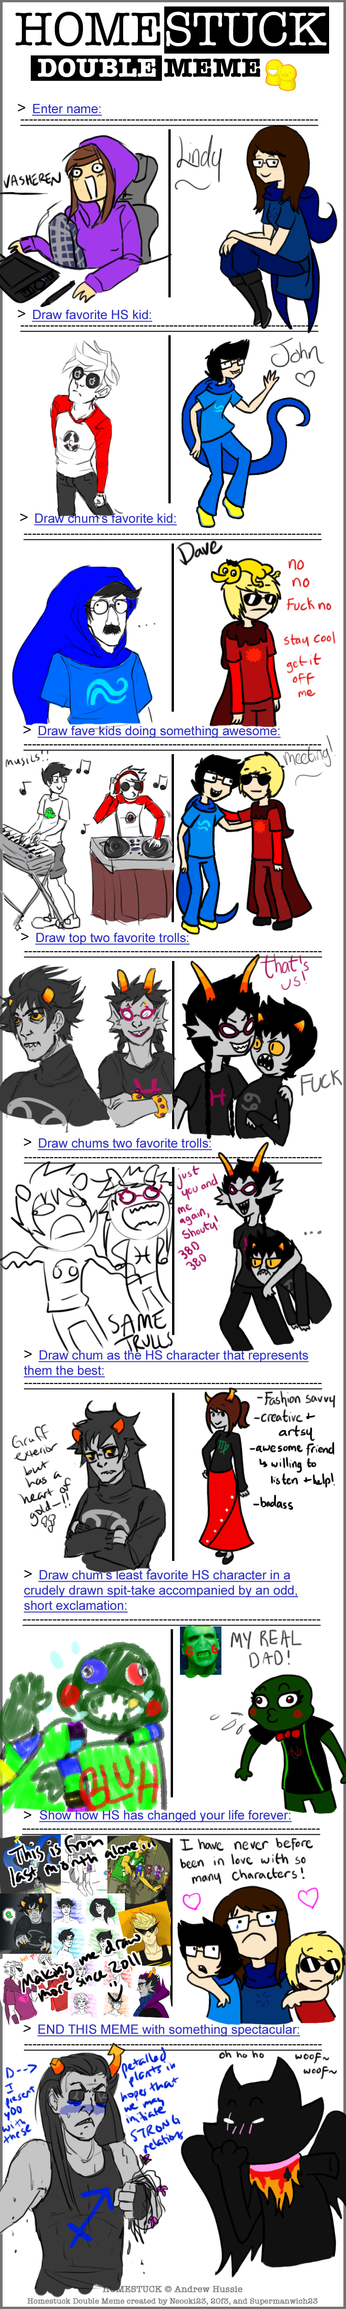 Homestuck Double Meme by LindorChocolate